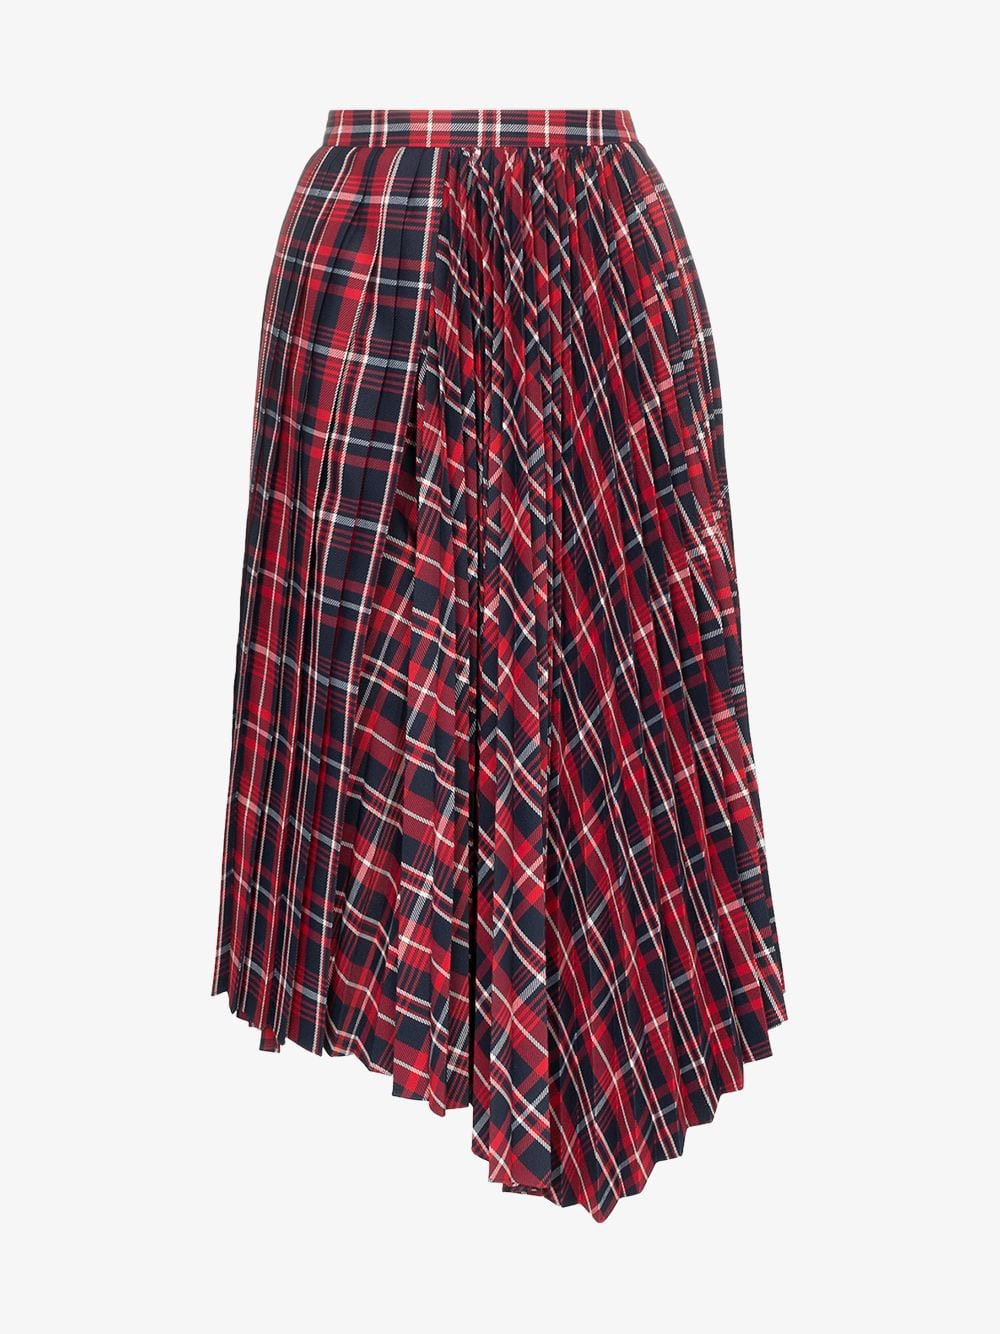 Juun.J Checked pleated midi-skirt in red